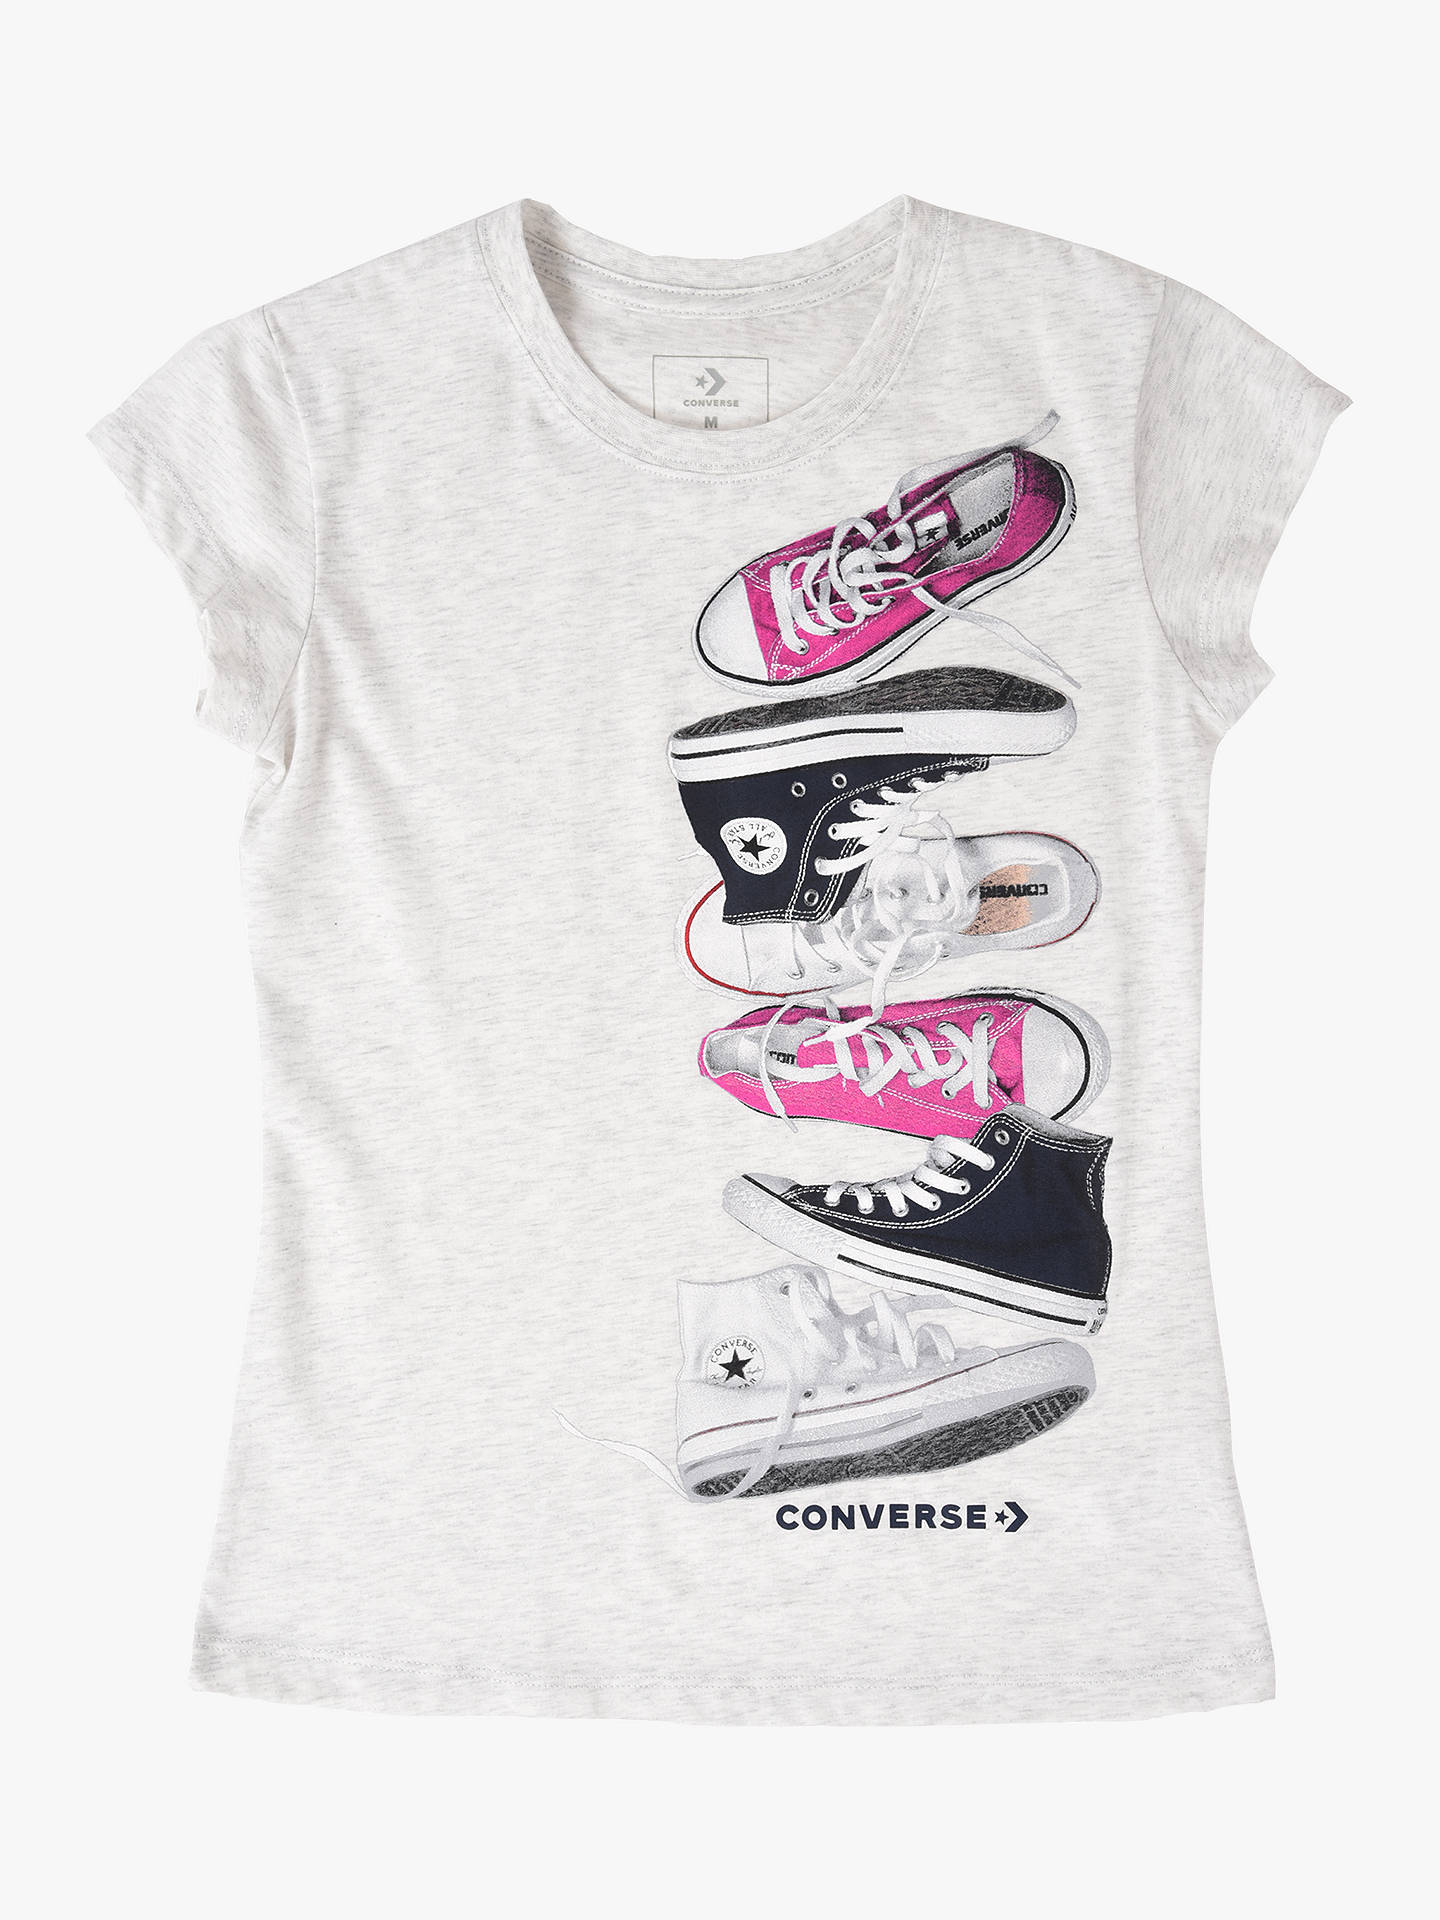 Converse Girl`s Top T-Shirt Grey Size 5-6 yrs